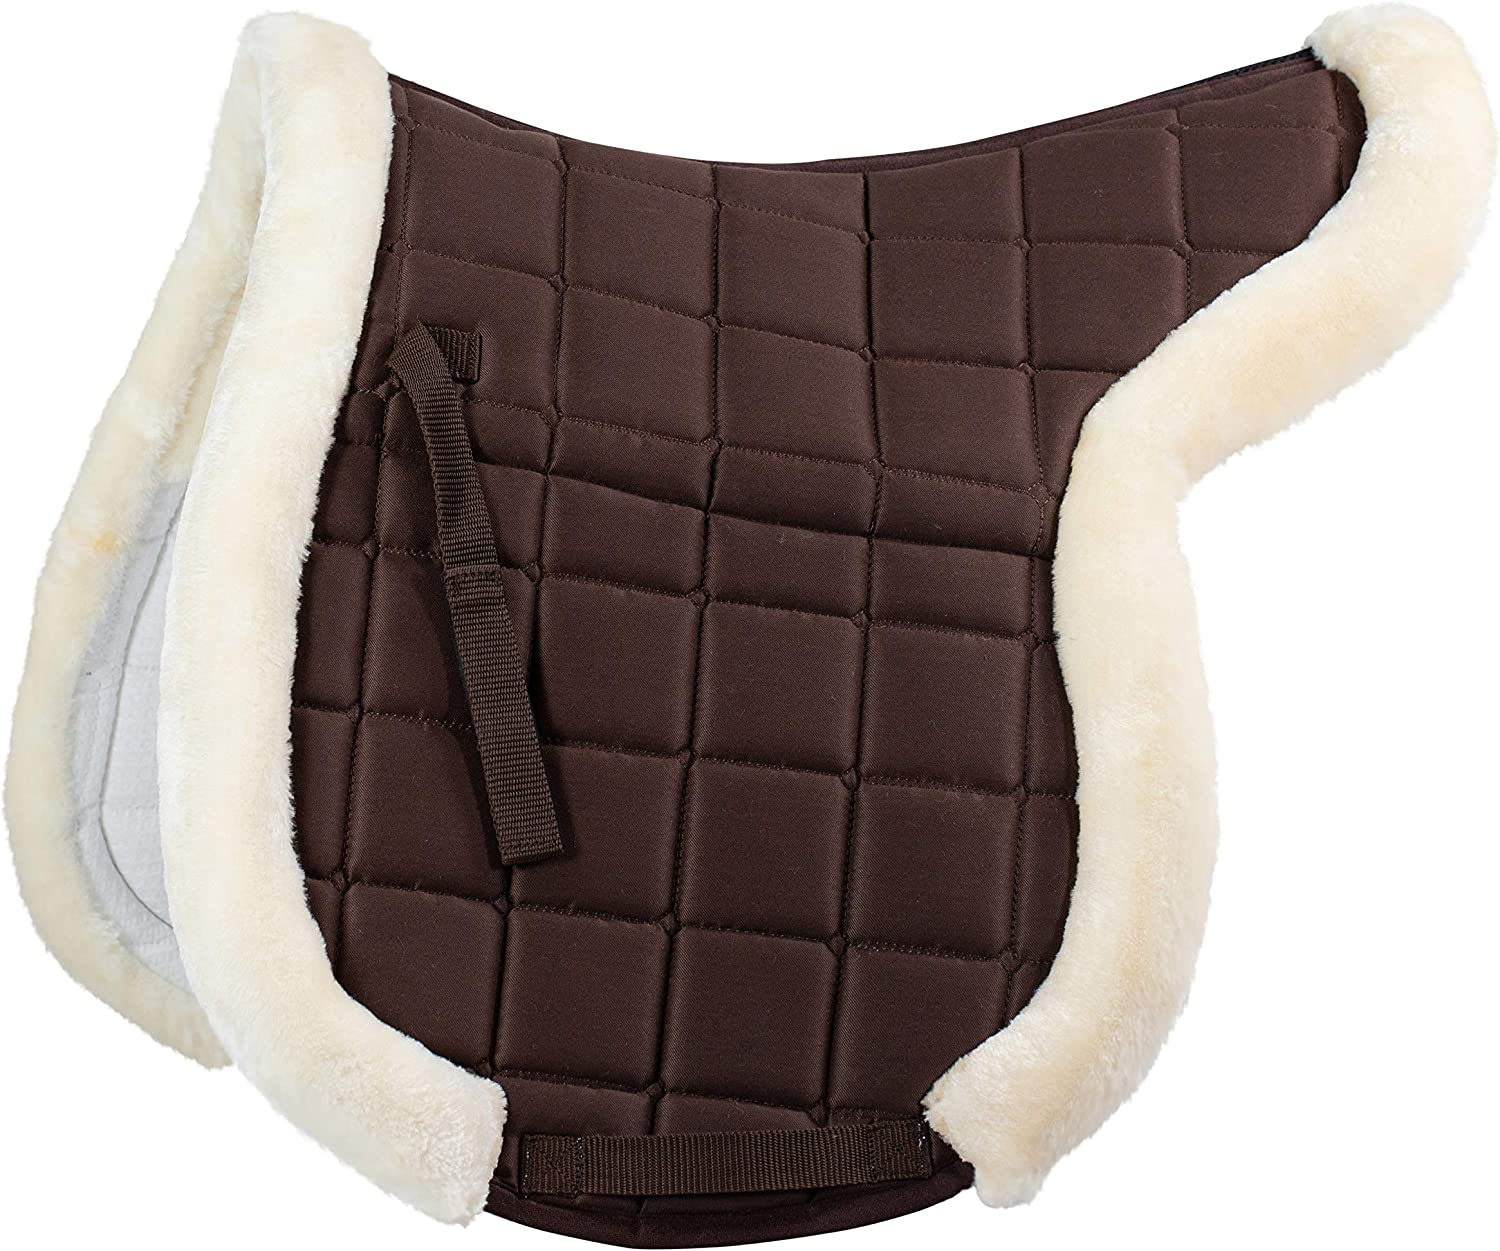 Horze Ventilated Shaped Pad with Faux Fur Trim  Dark Brown  Full